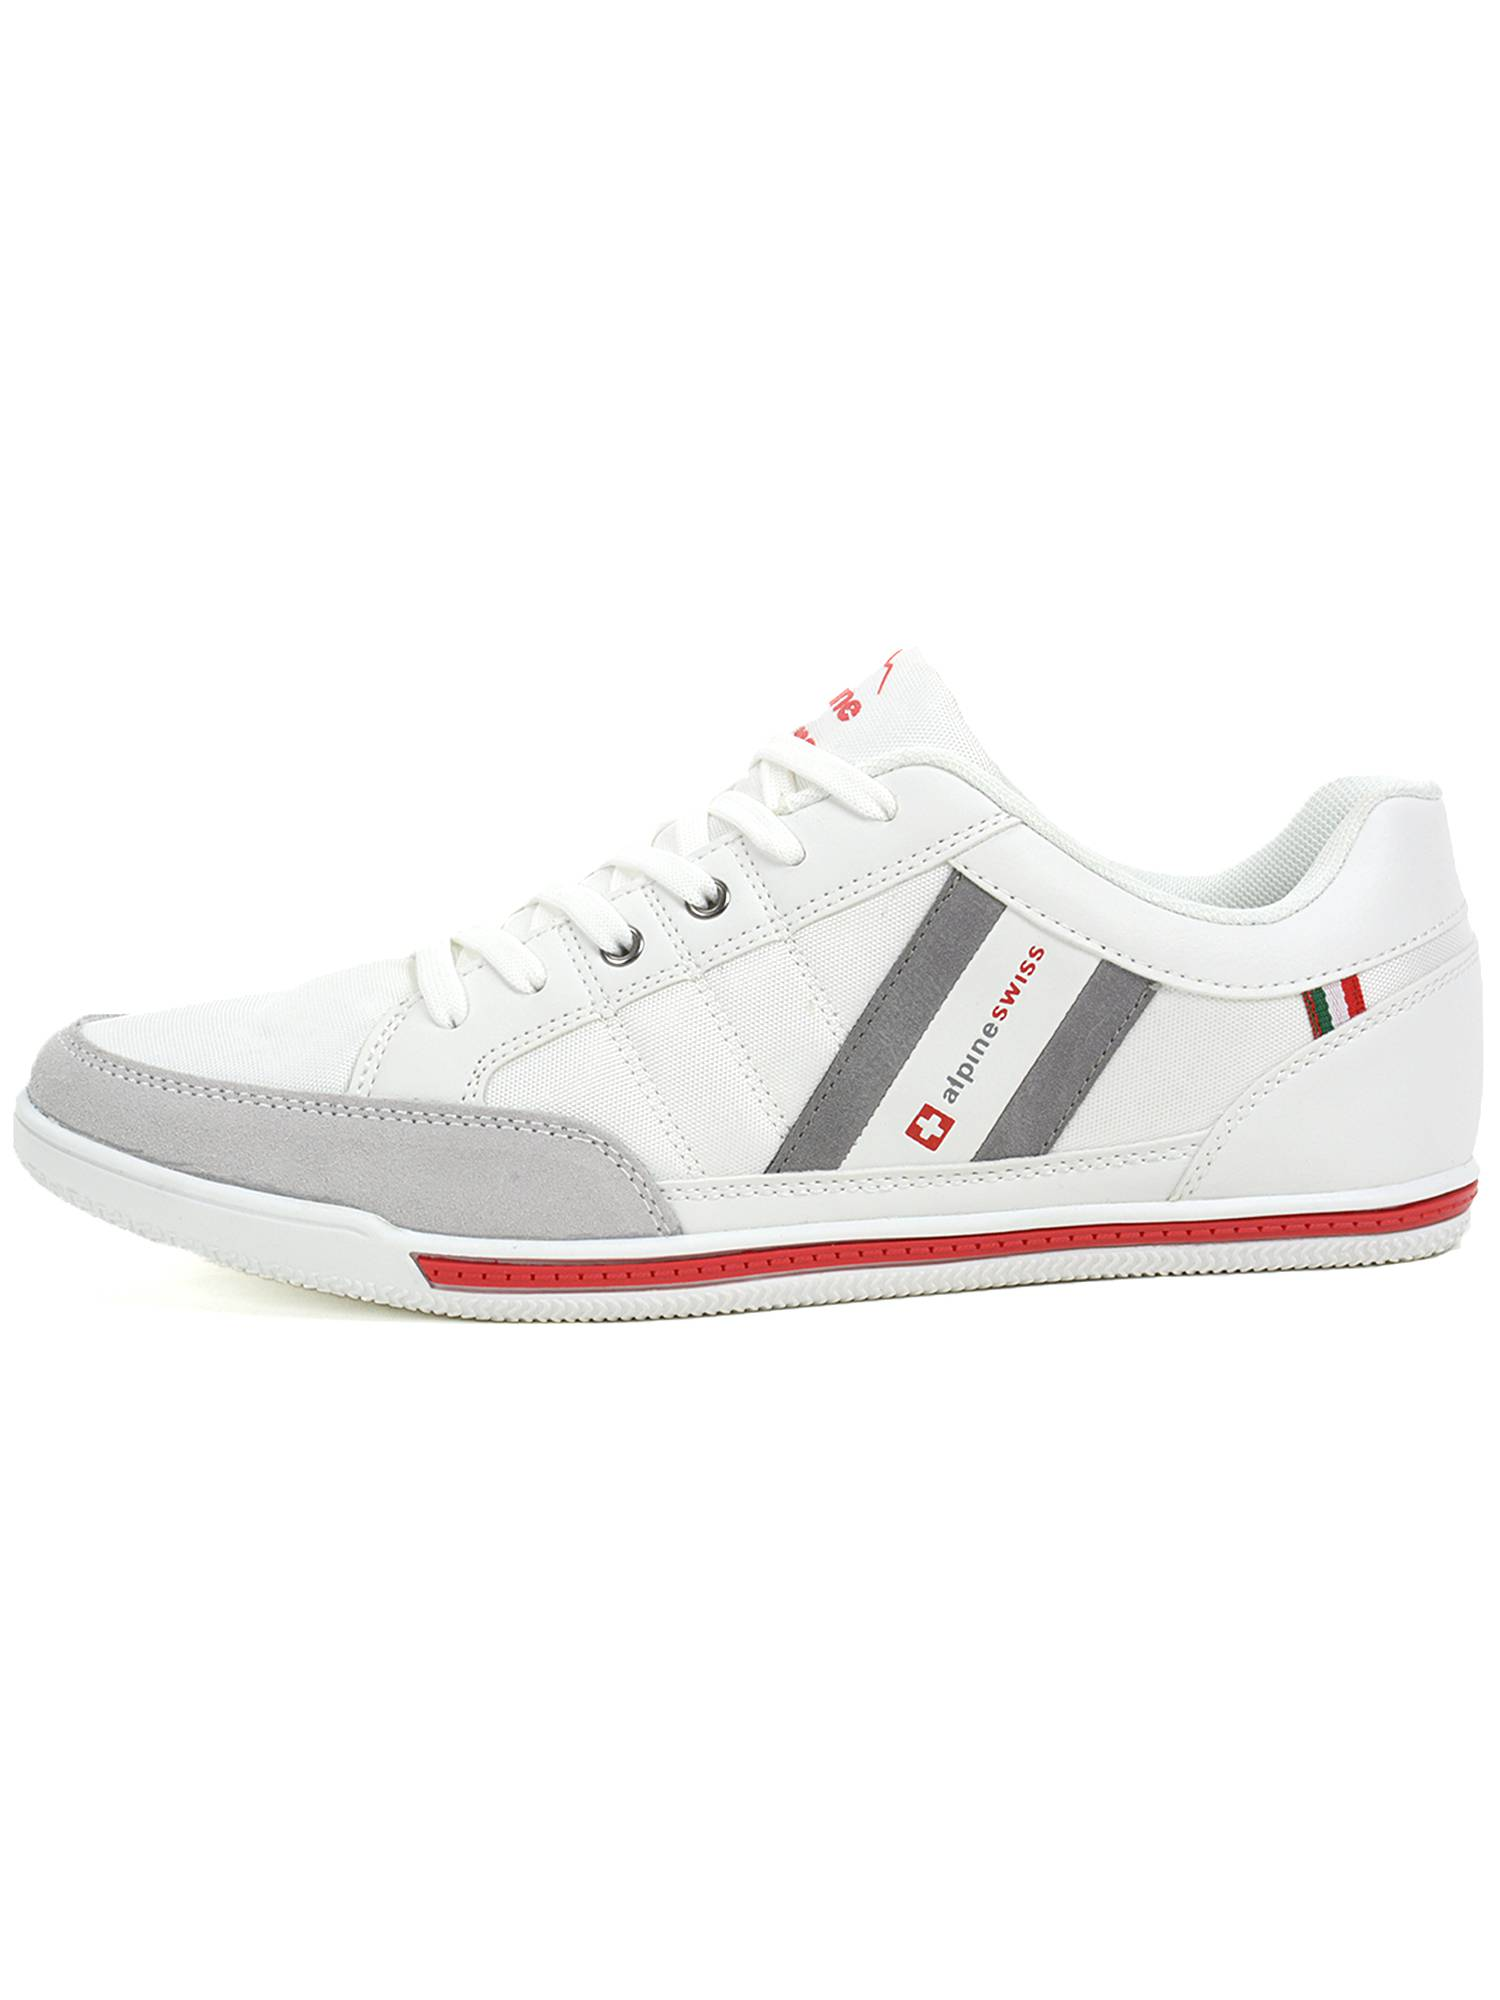 de553e295cd0 alpine swiss - Alpine Swiss Stefan Mens Retro Fashion Sneakers Tennis Shoes  Casual Athletic New - Walmart.com